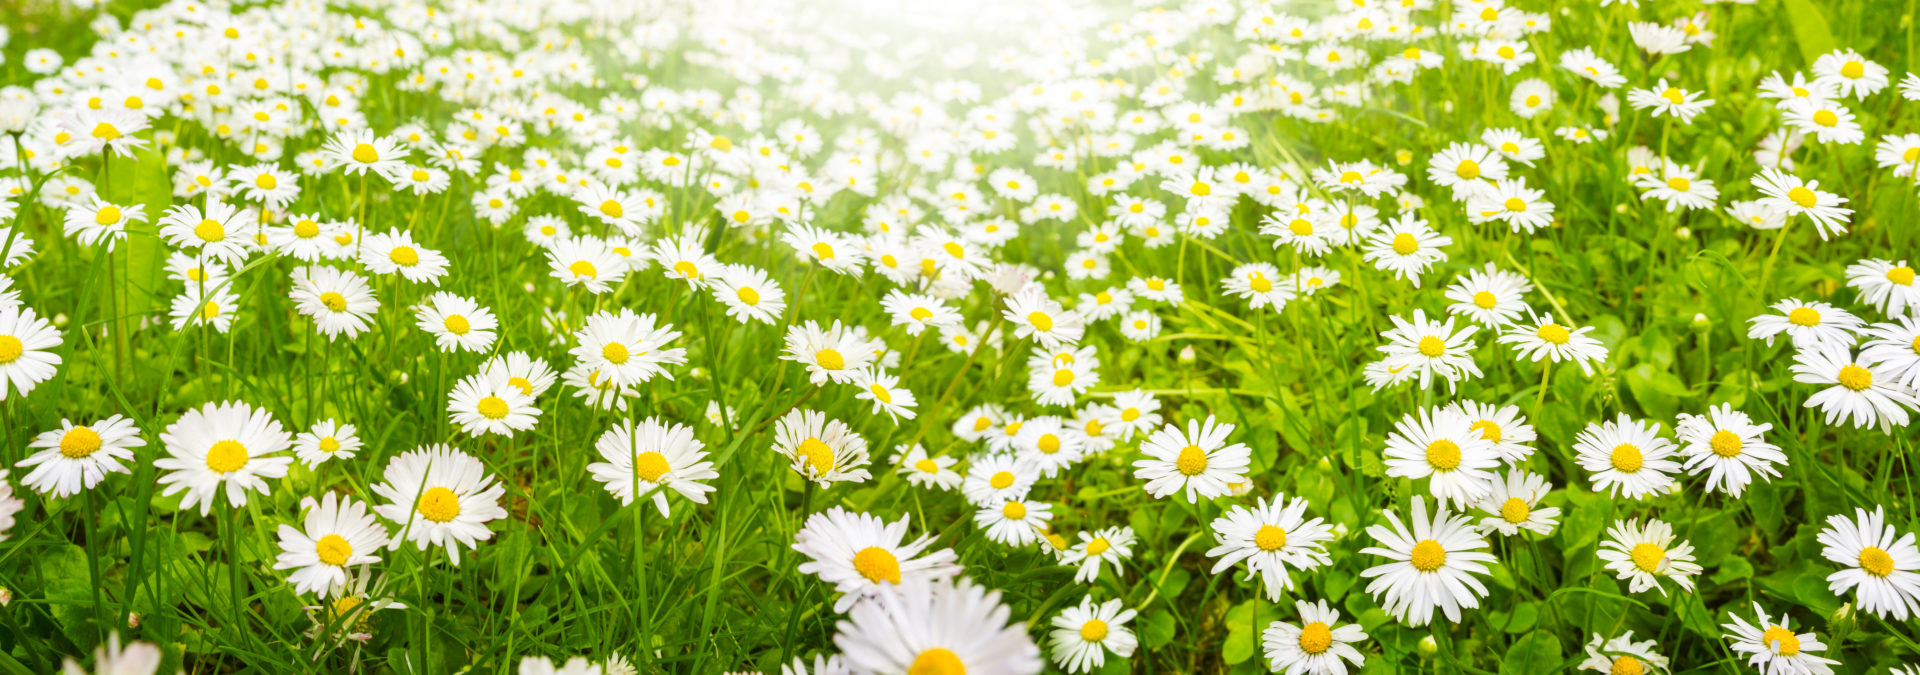 Daisies, flower meadow in summer, banners